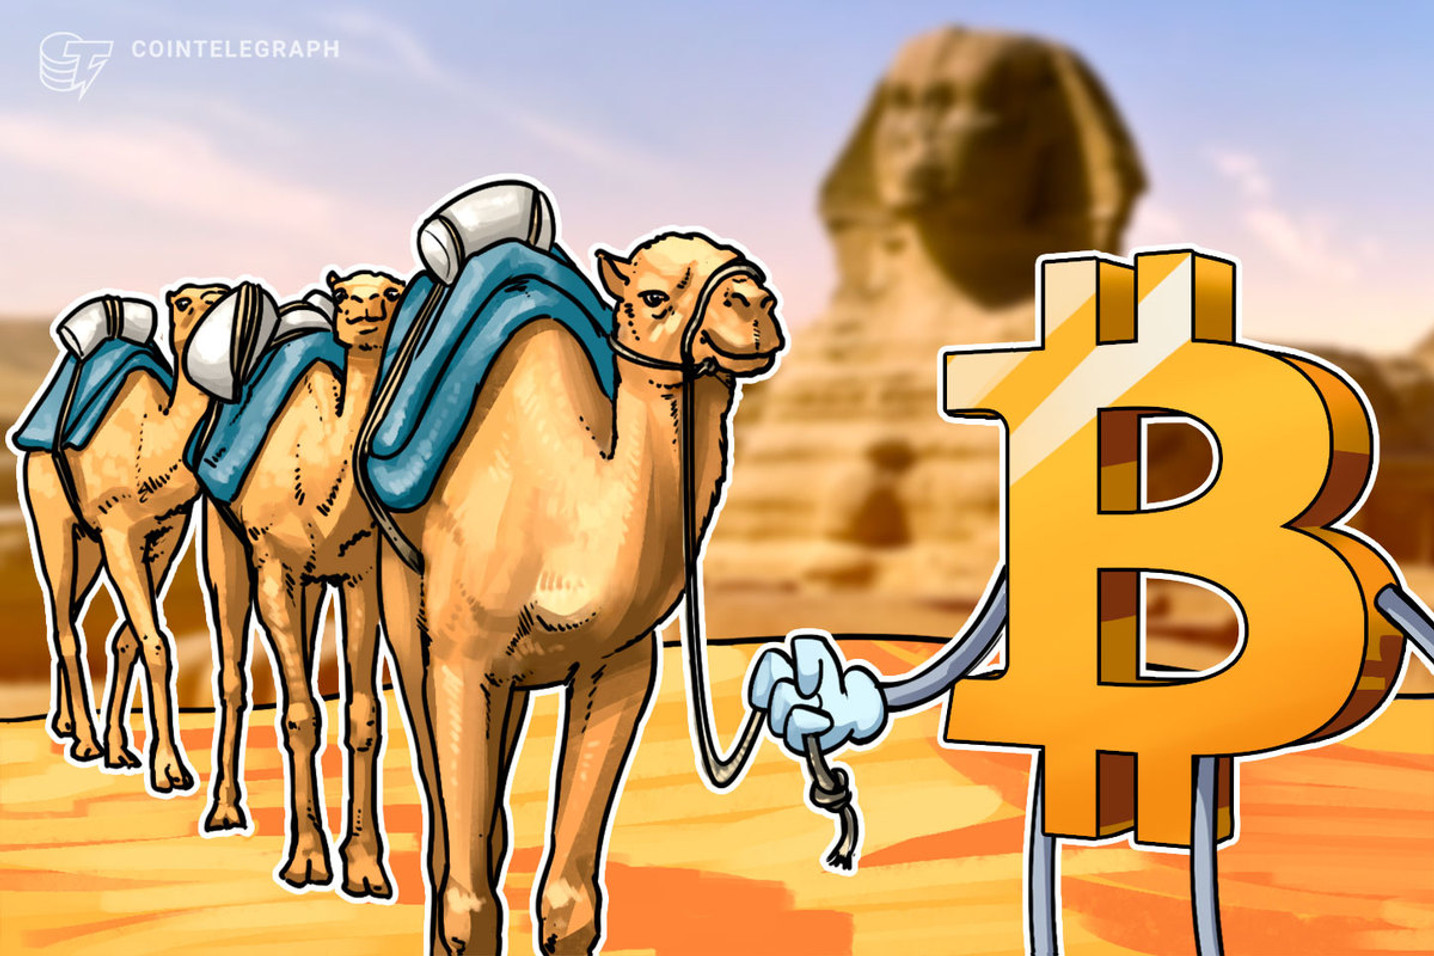 Bitcoin use rise in Egypt amid economic recession